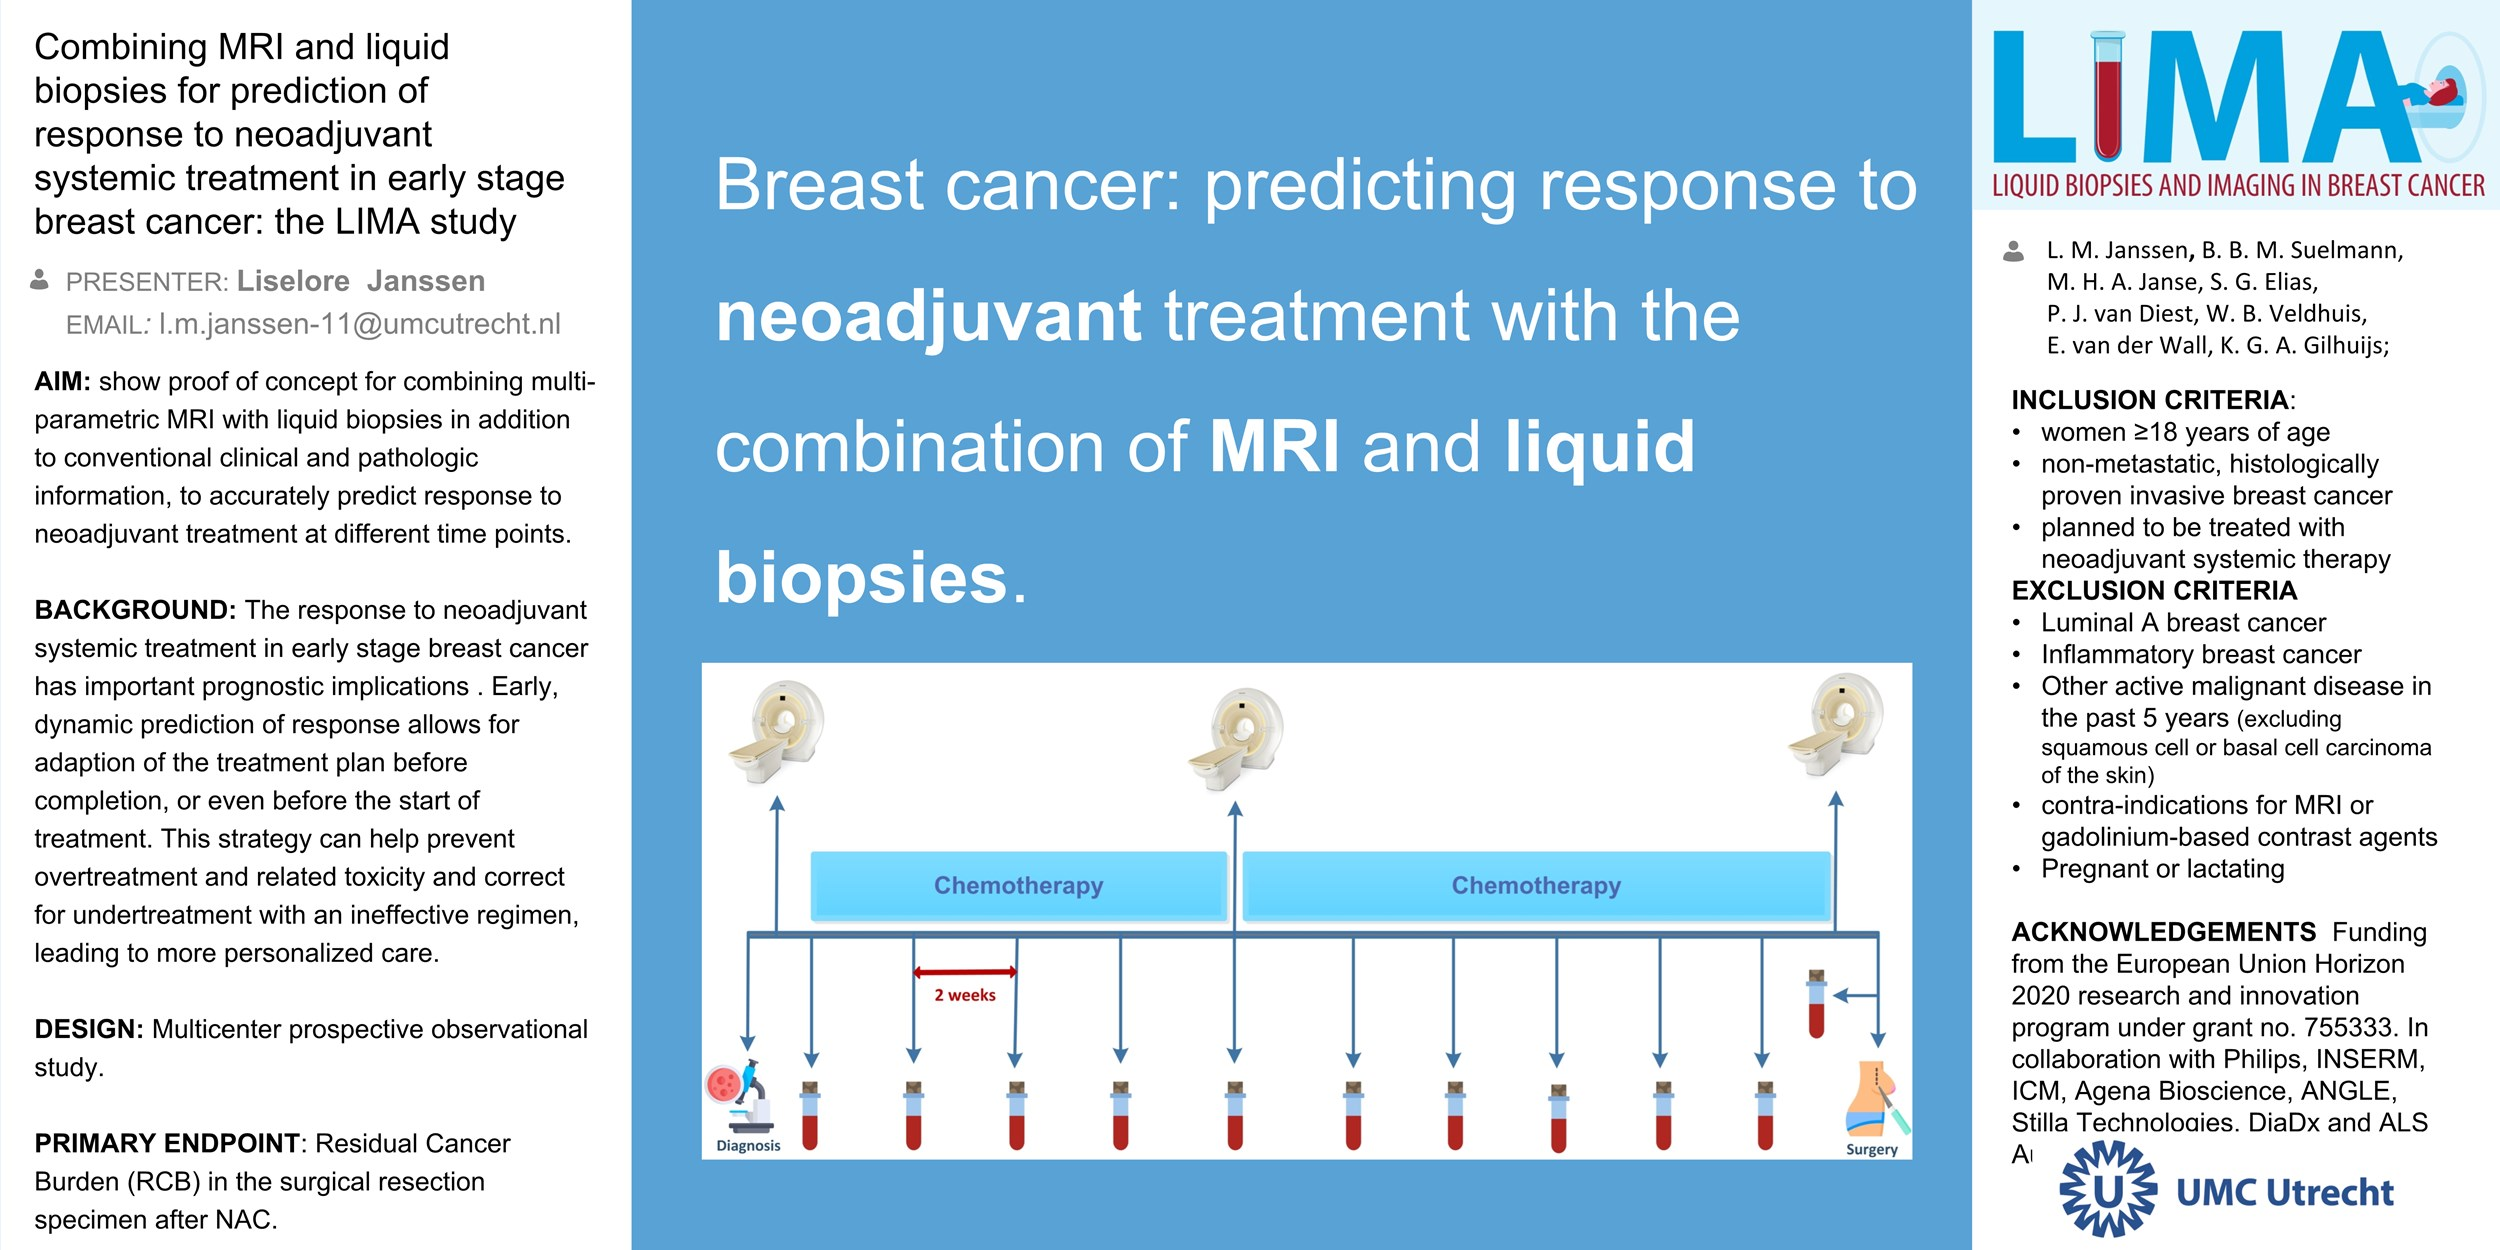 Combining MRI and liquid biopsies for prediction of response to neoadjuvant chemotherapy in early stage breast cancer: the LIMA study